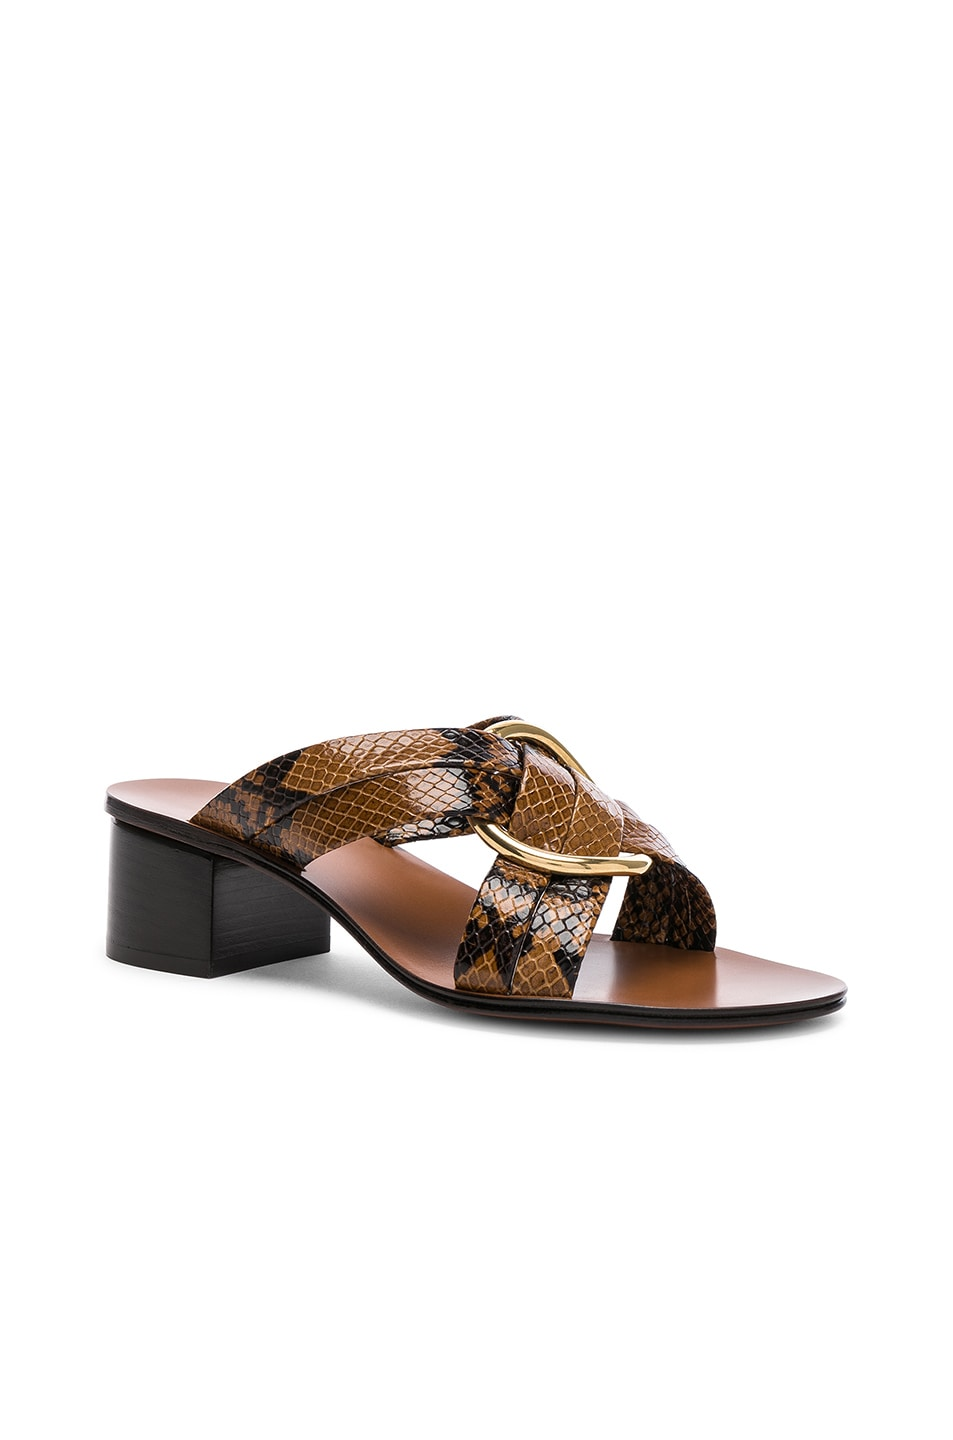 Image 2 of Chloe Rony Python Print Leather Cross Strap Mules in Light Tan